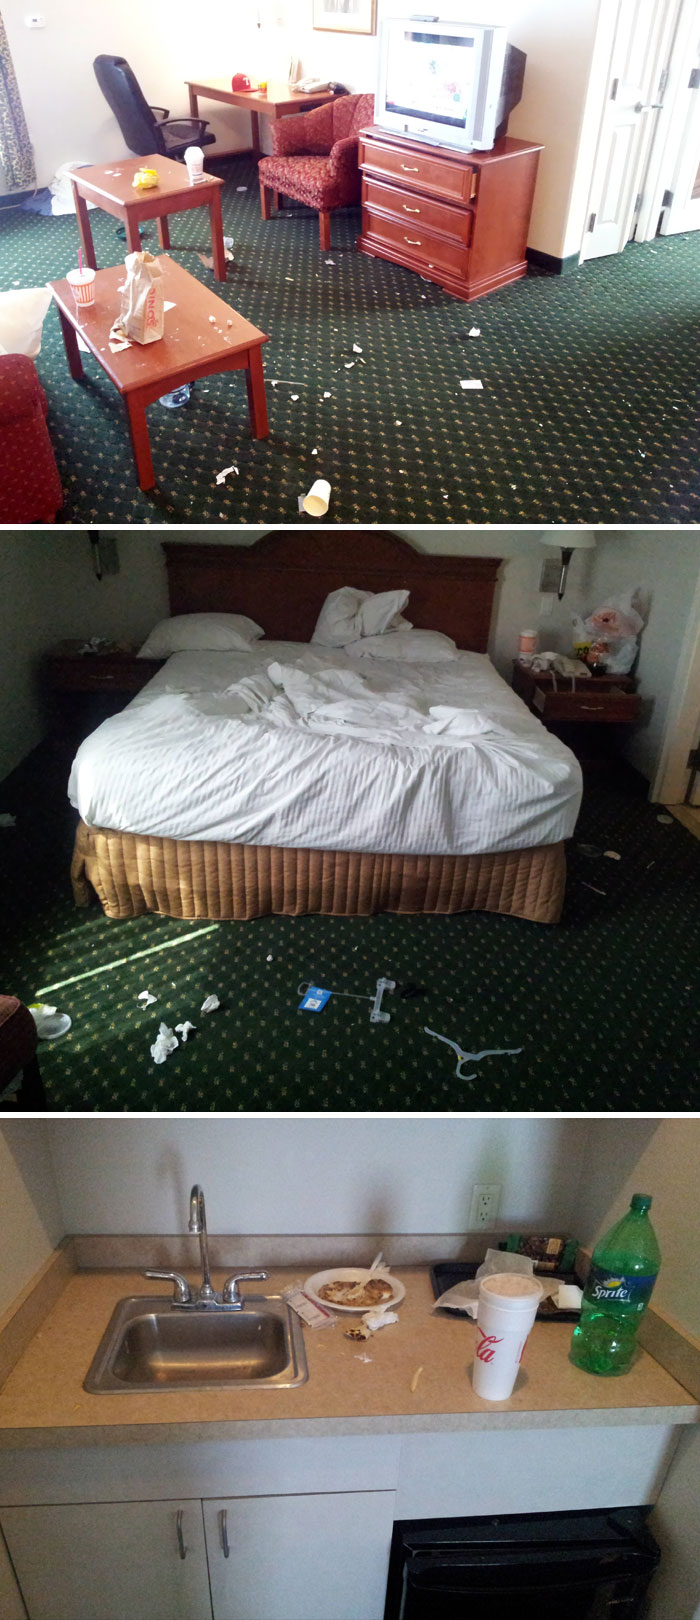 This Is The Room Of A Hotel Guest That Stayed For 3 Days. No Pets, No Kids. Just One Dude With A Mission To Be Disgusting